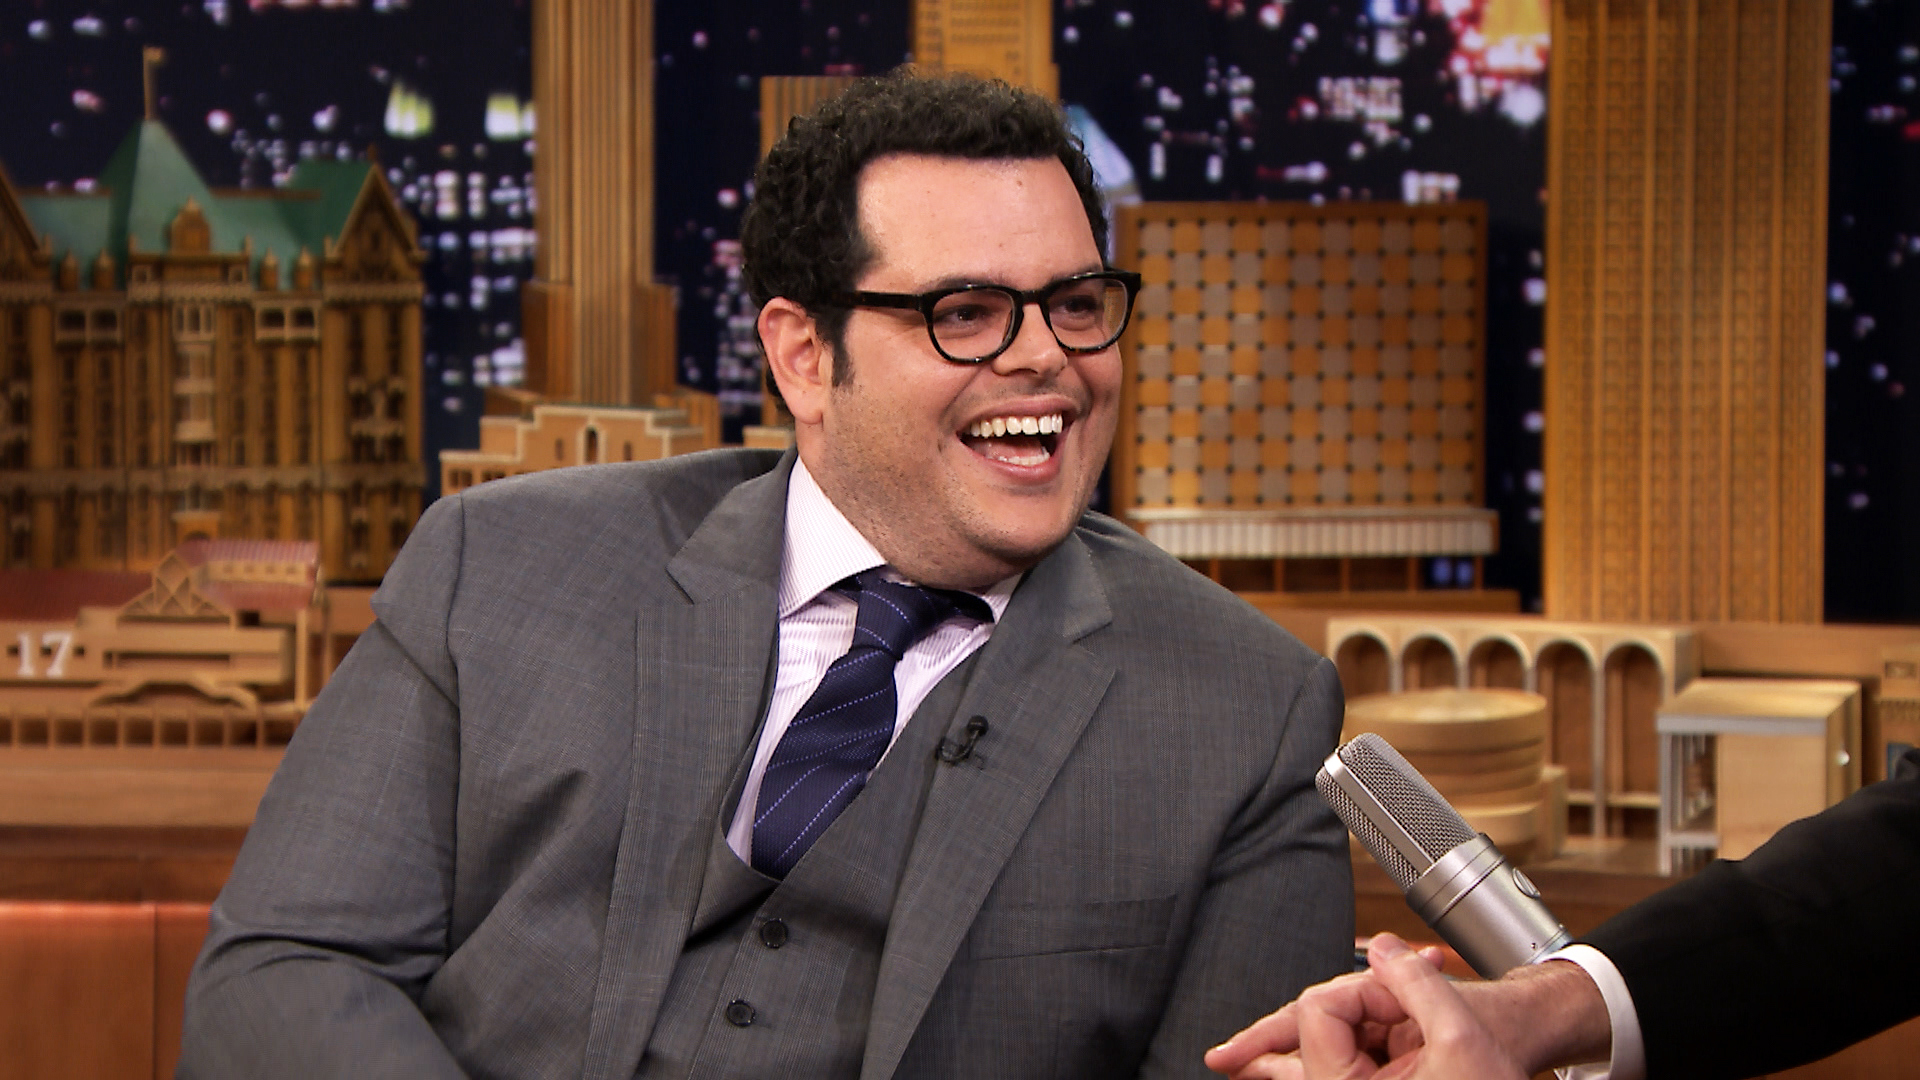 150114 2840428 josh gad posed with olaf in times square jpgJosh Gad Olaf